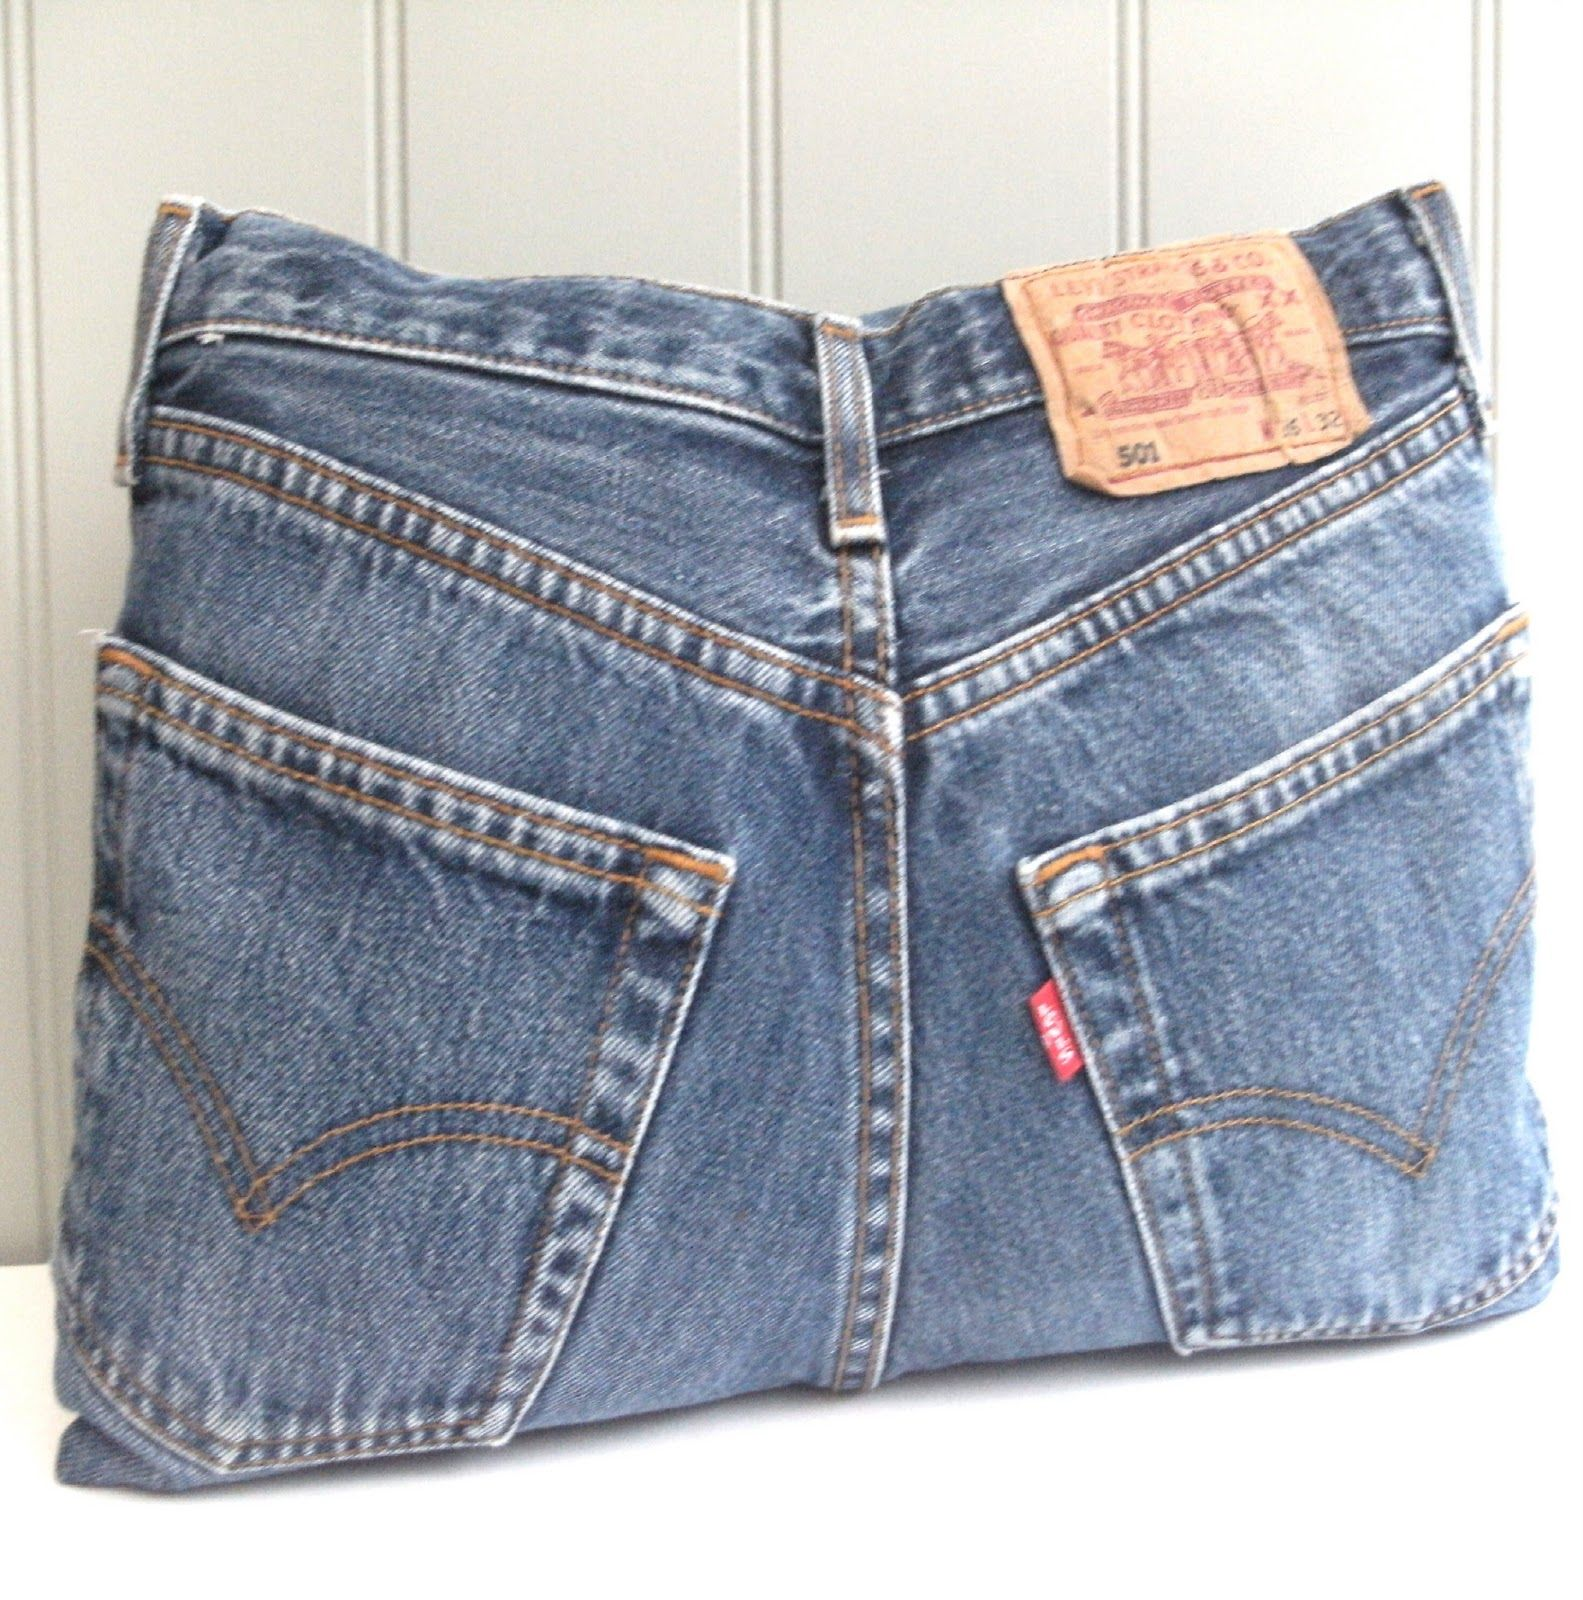 recycled denims into cushion cover